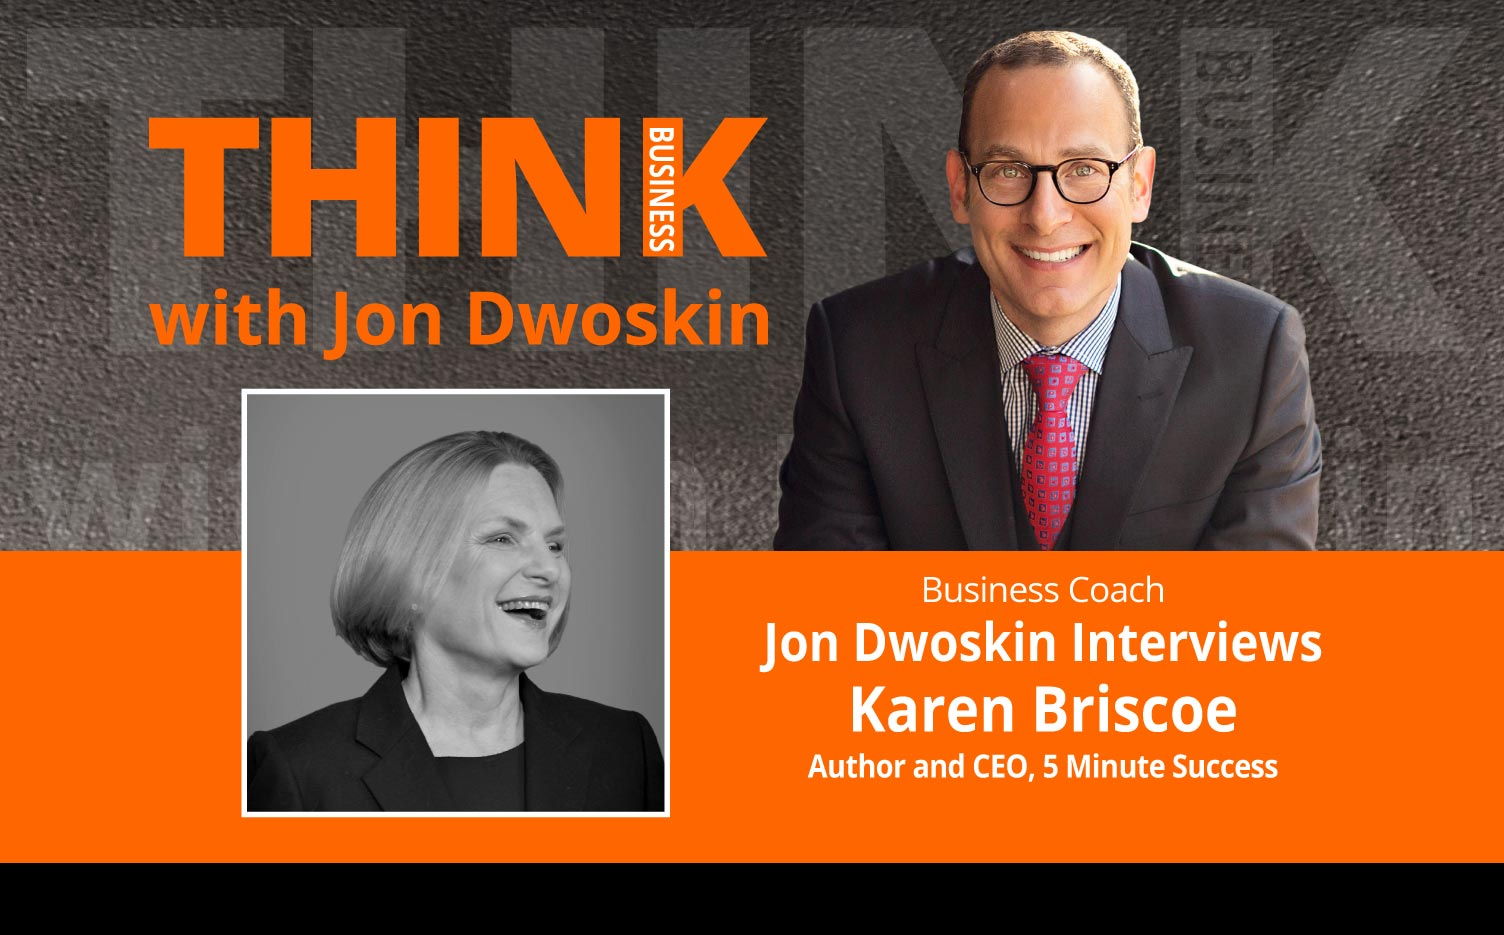 THINK Business Podcast: Jon Dwoskin Interviews Karen Briscoe, Author and CEO, 5 Minute Success